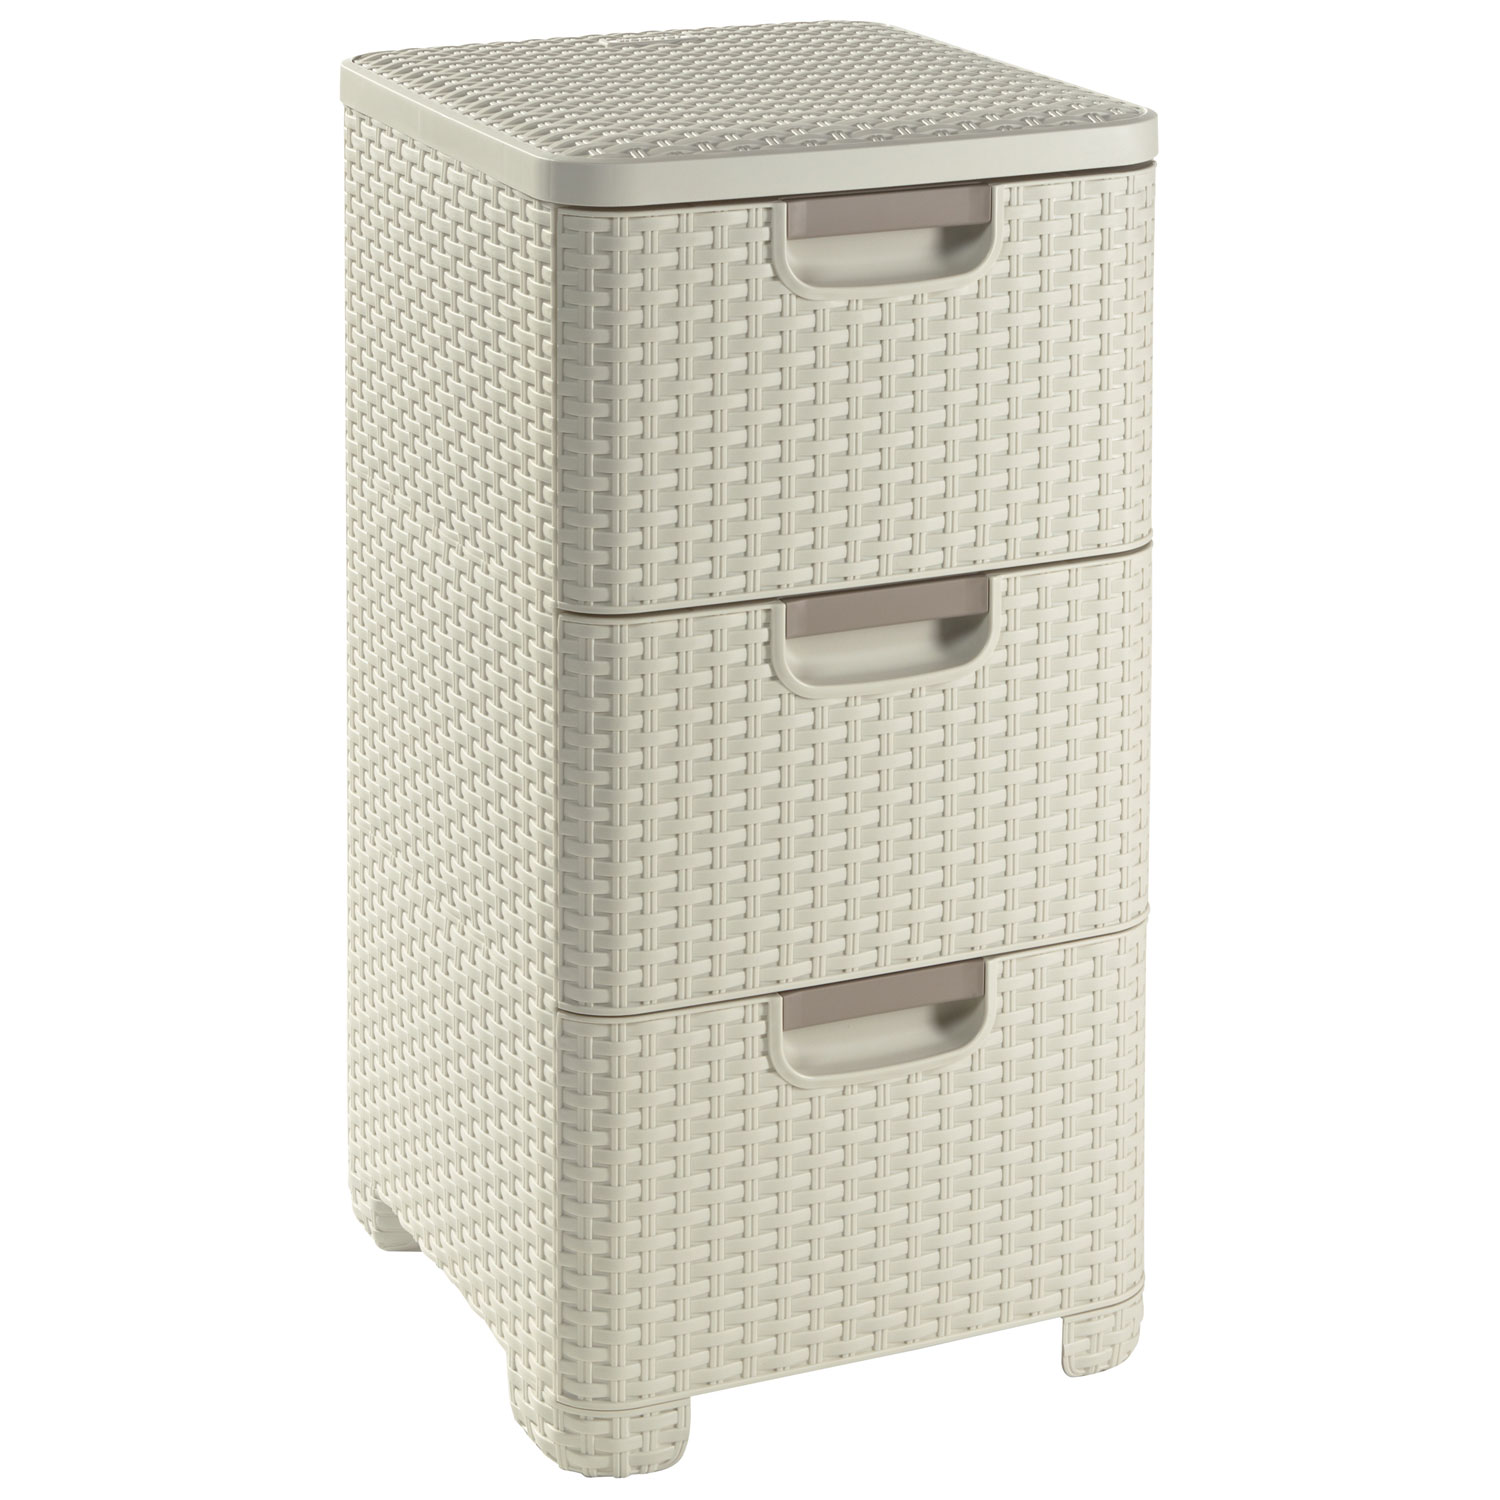 Image of Curver Style 3 Drawer Tower